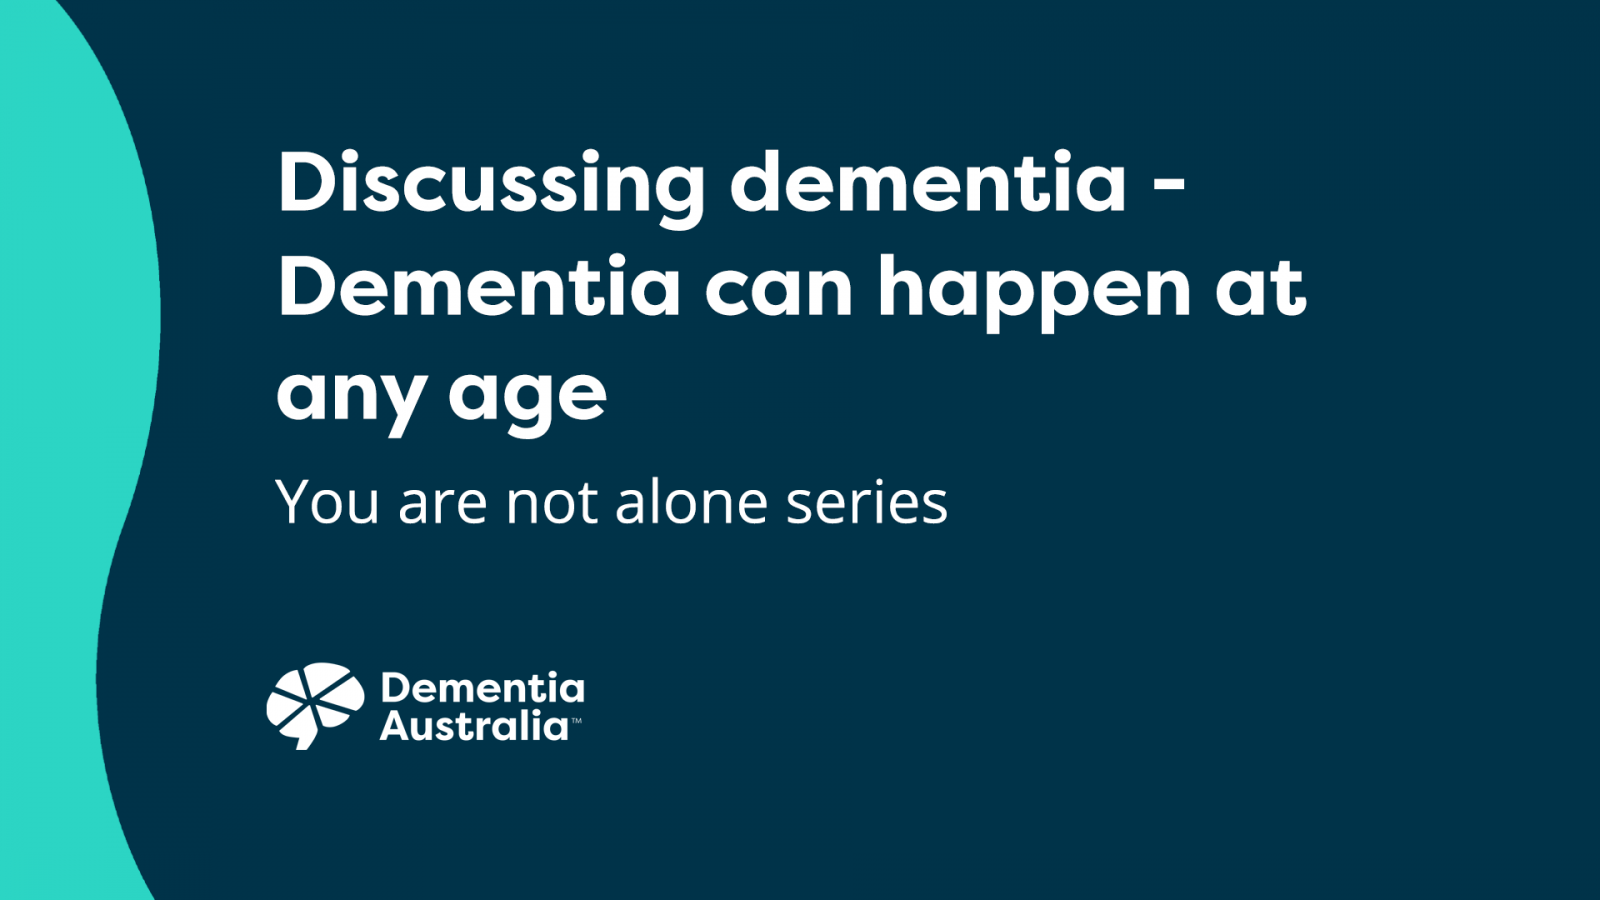 Dementia can happen at any age - Video Thumbnail